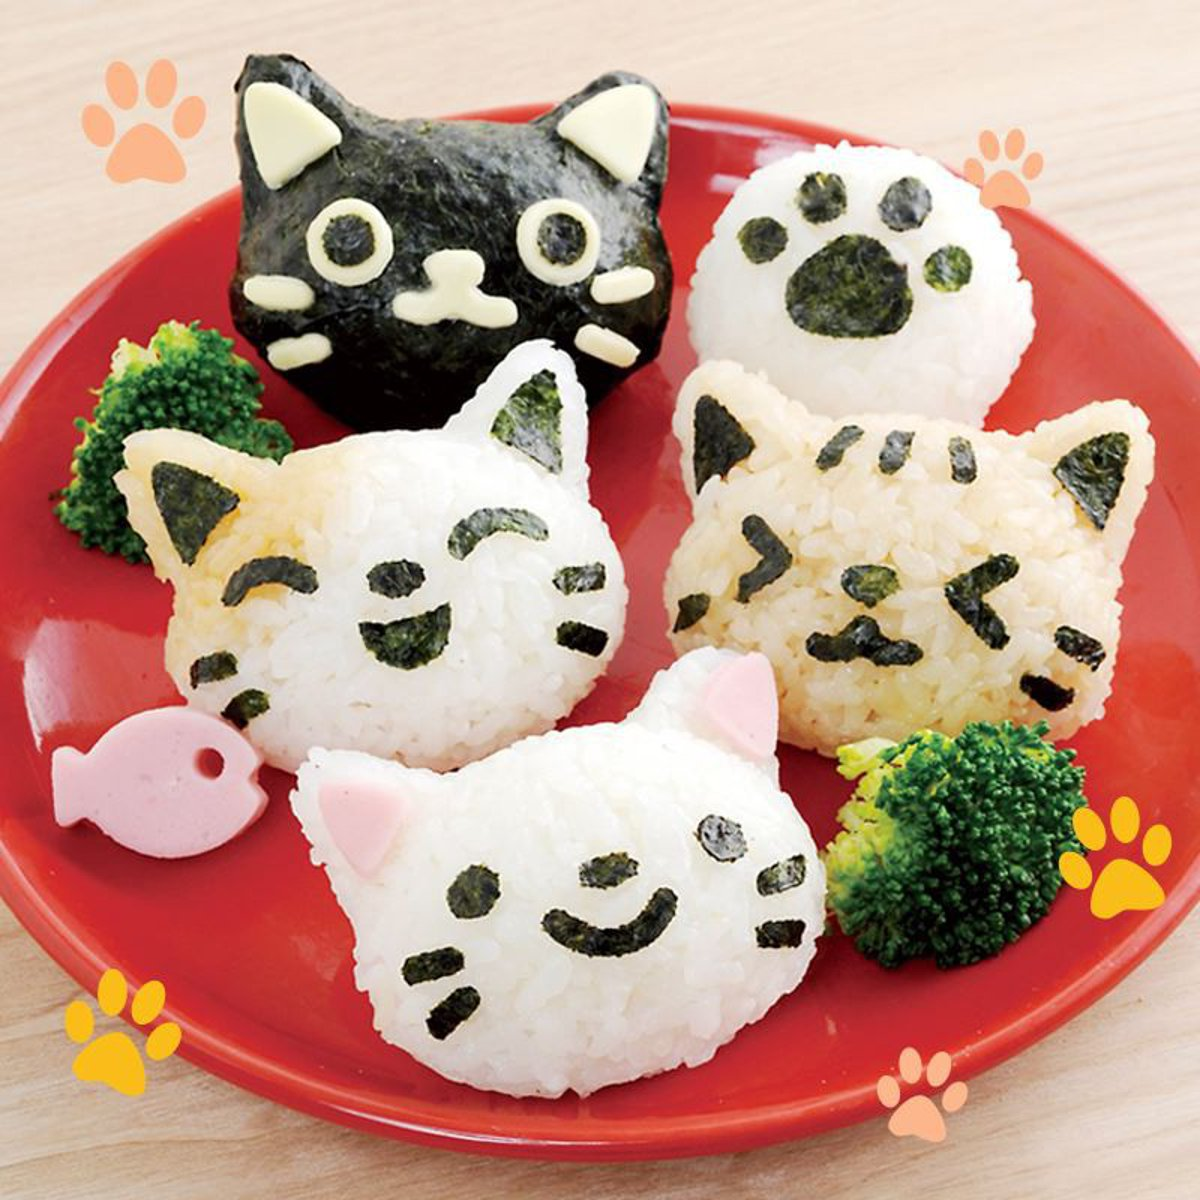 Colorful DIY 3D Cute Cat Bento Rice Ball Sushi Plastic Molds Kitchen Sushi Cooking Tools Chocolate Sandwich Cutter Mould Maker